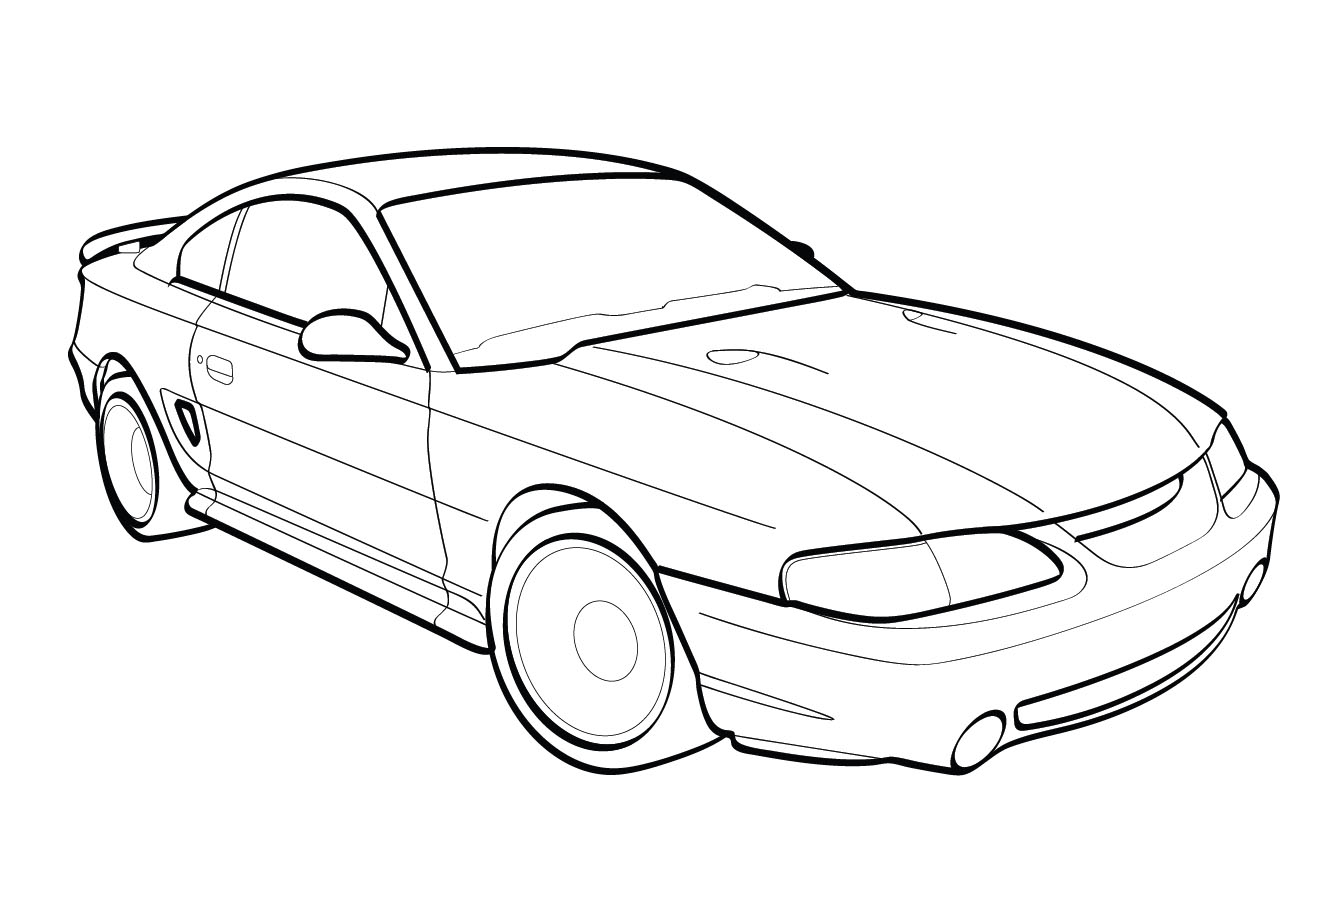 1999 ford cobra mustang vector line drawing